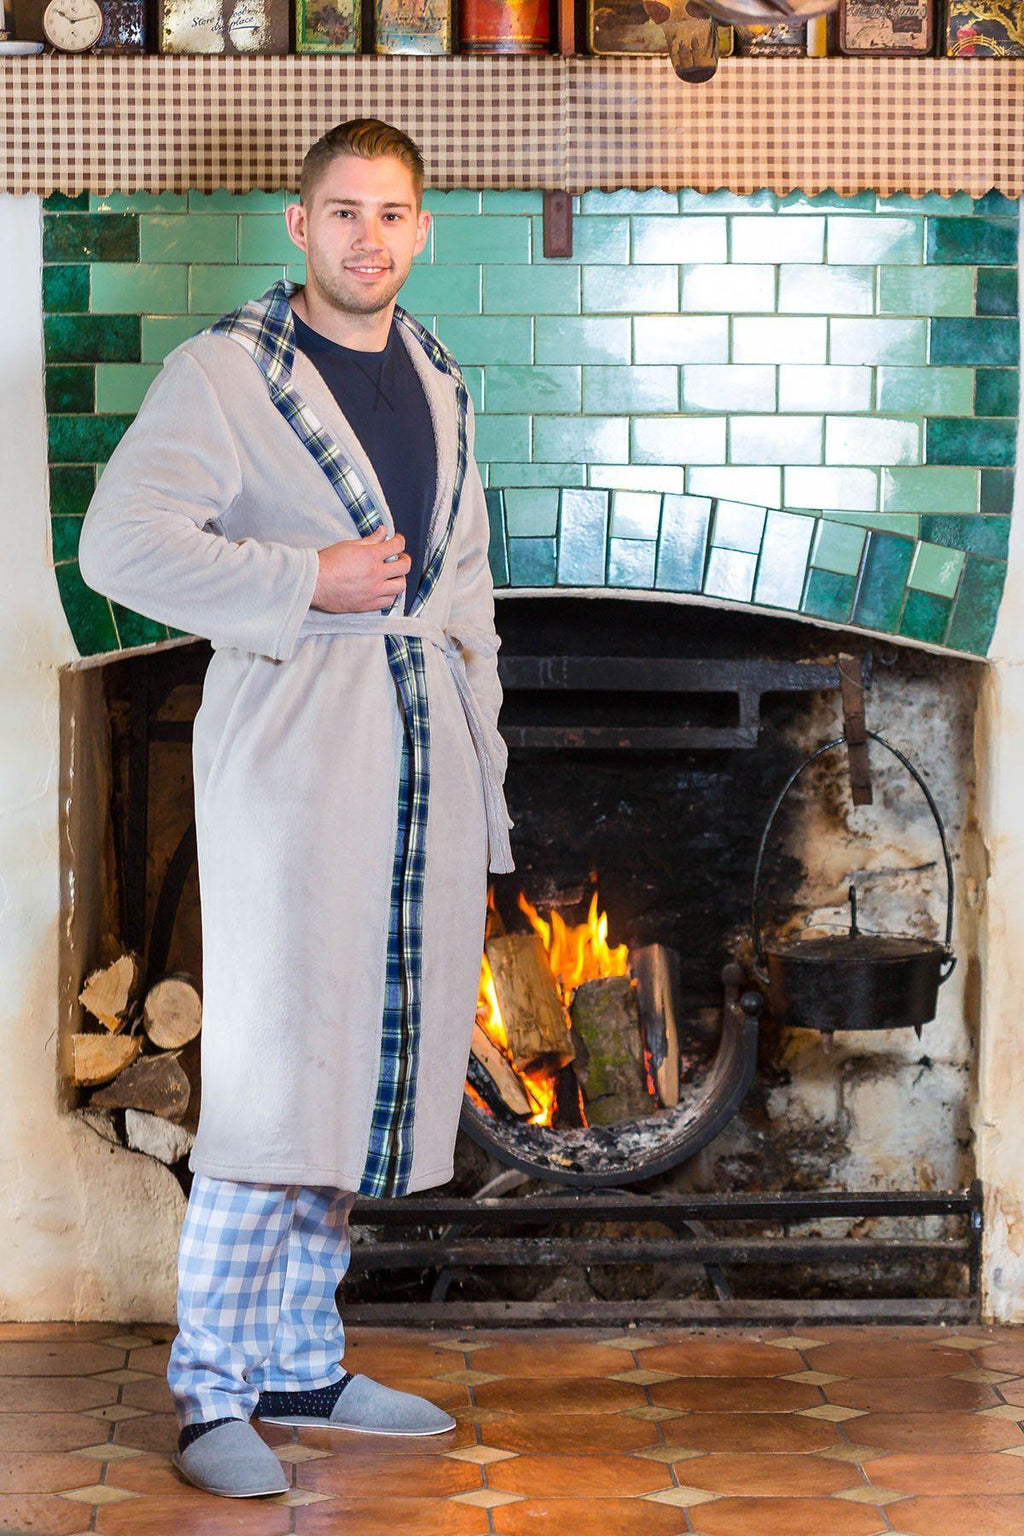 Nightrobe Mens Killarney Grey with contrast Douglas Blue Tartan Sleepwear Lee Valley Ireland